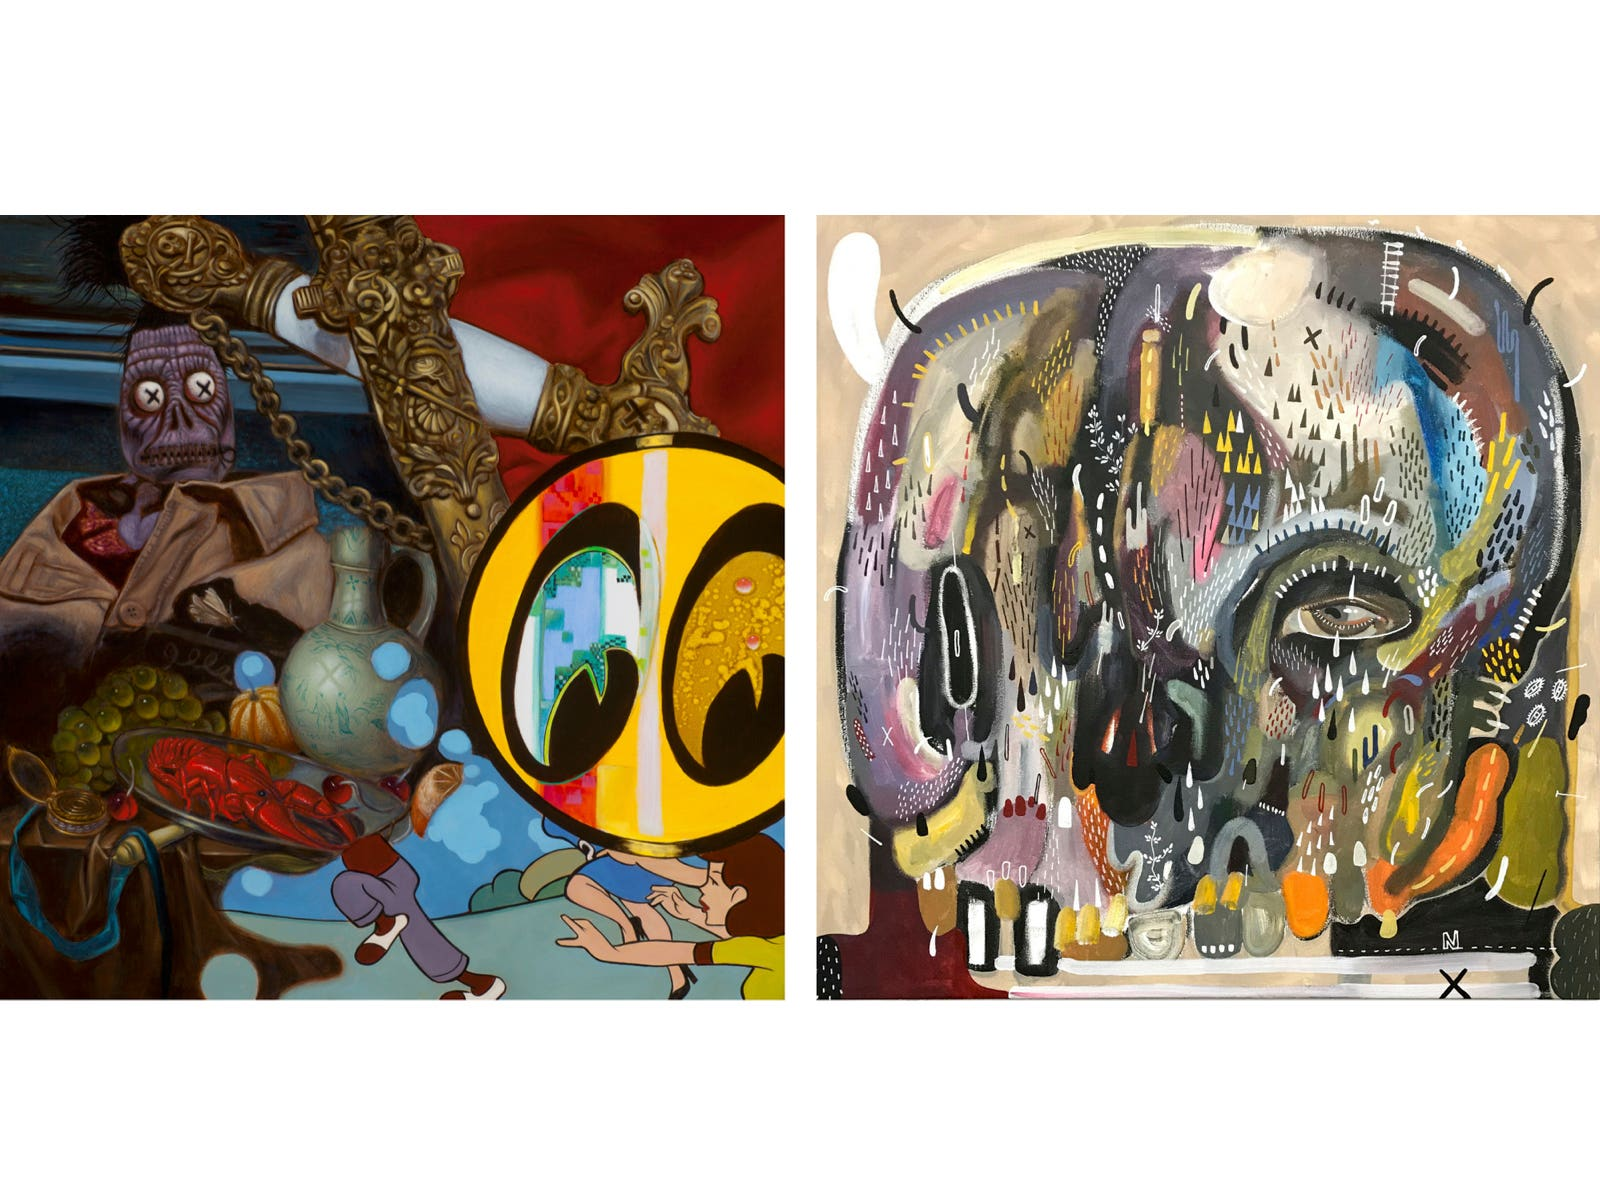 'Tomb of Young Greaseball' by Jack Shure (left) and 'Cover Up' by Reen Barrera (right)